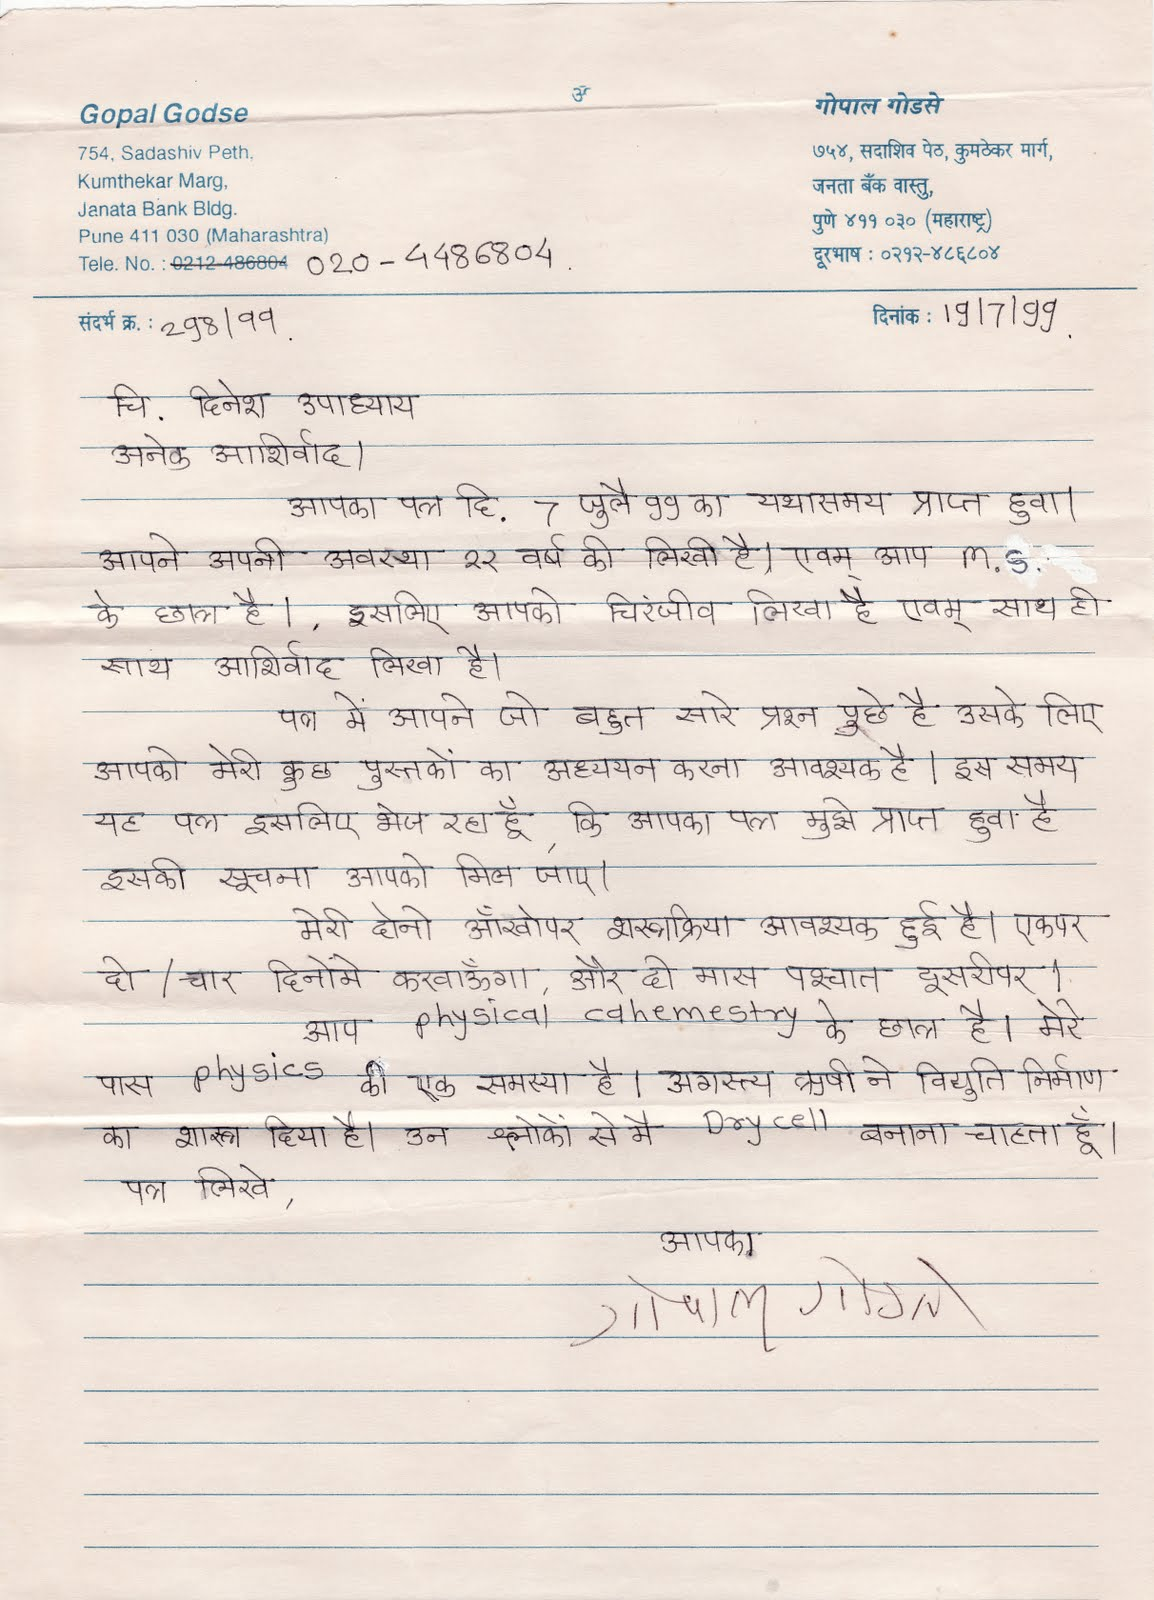 Gopal Godse The Most Infamous Conspirator In Assassination Of Mahatma Gandhi His Handwritten Letter